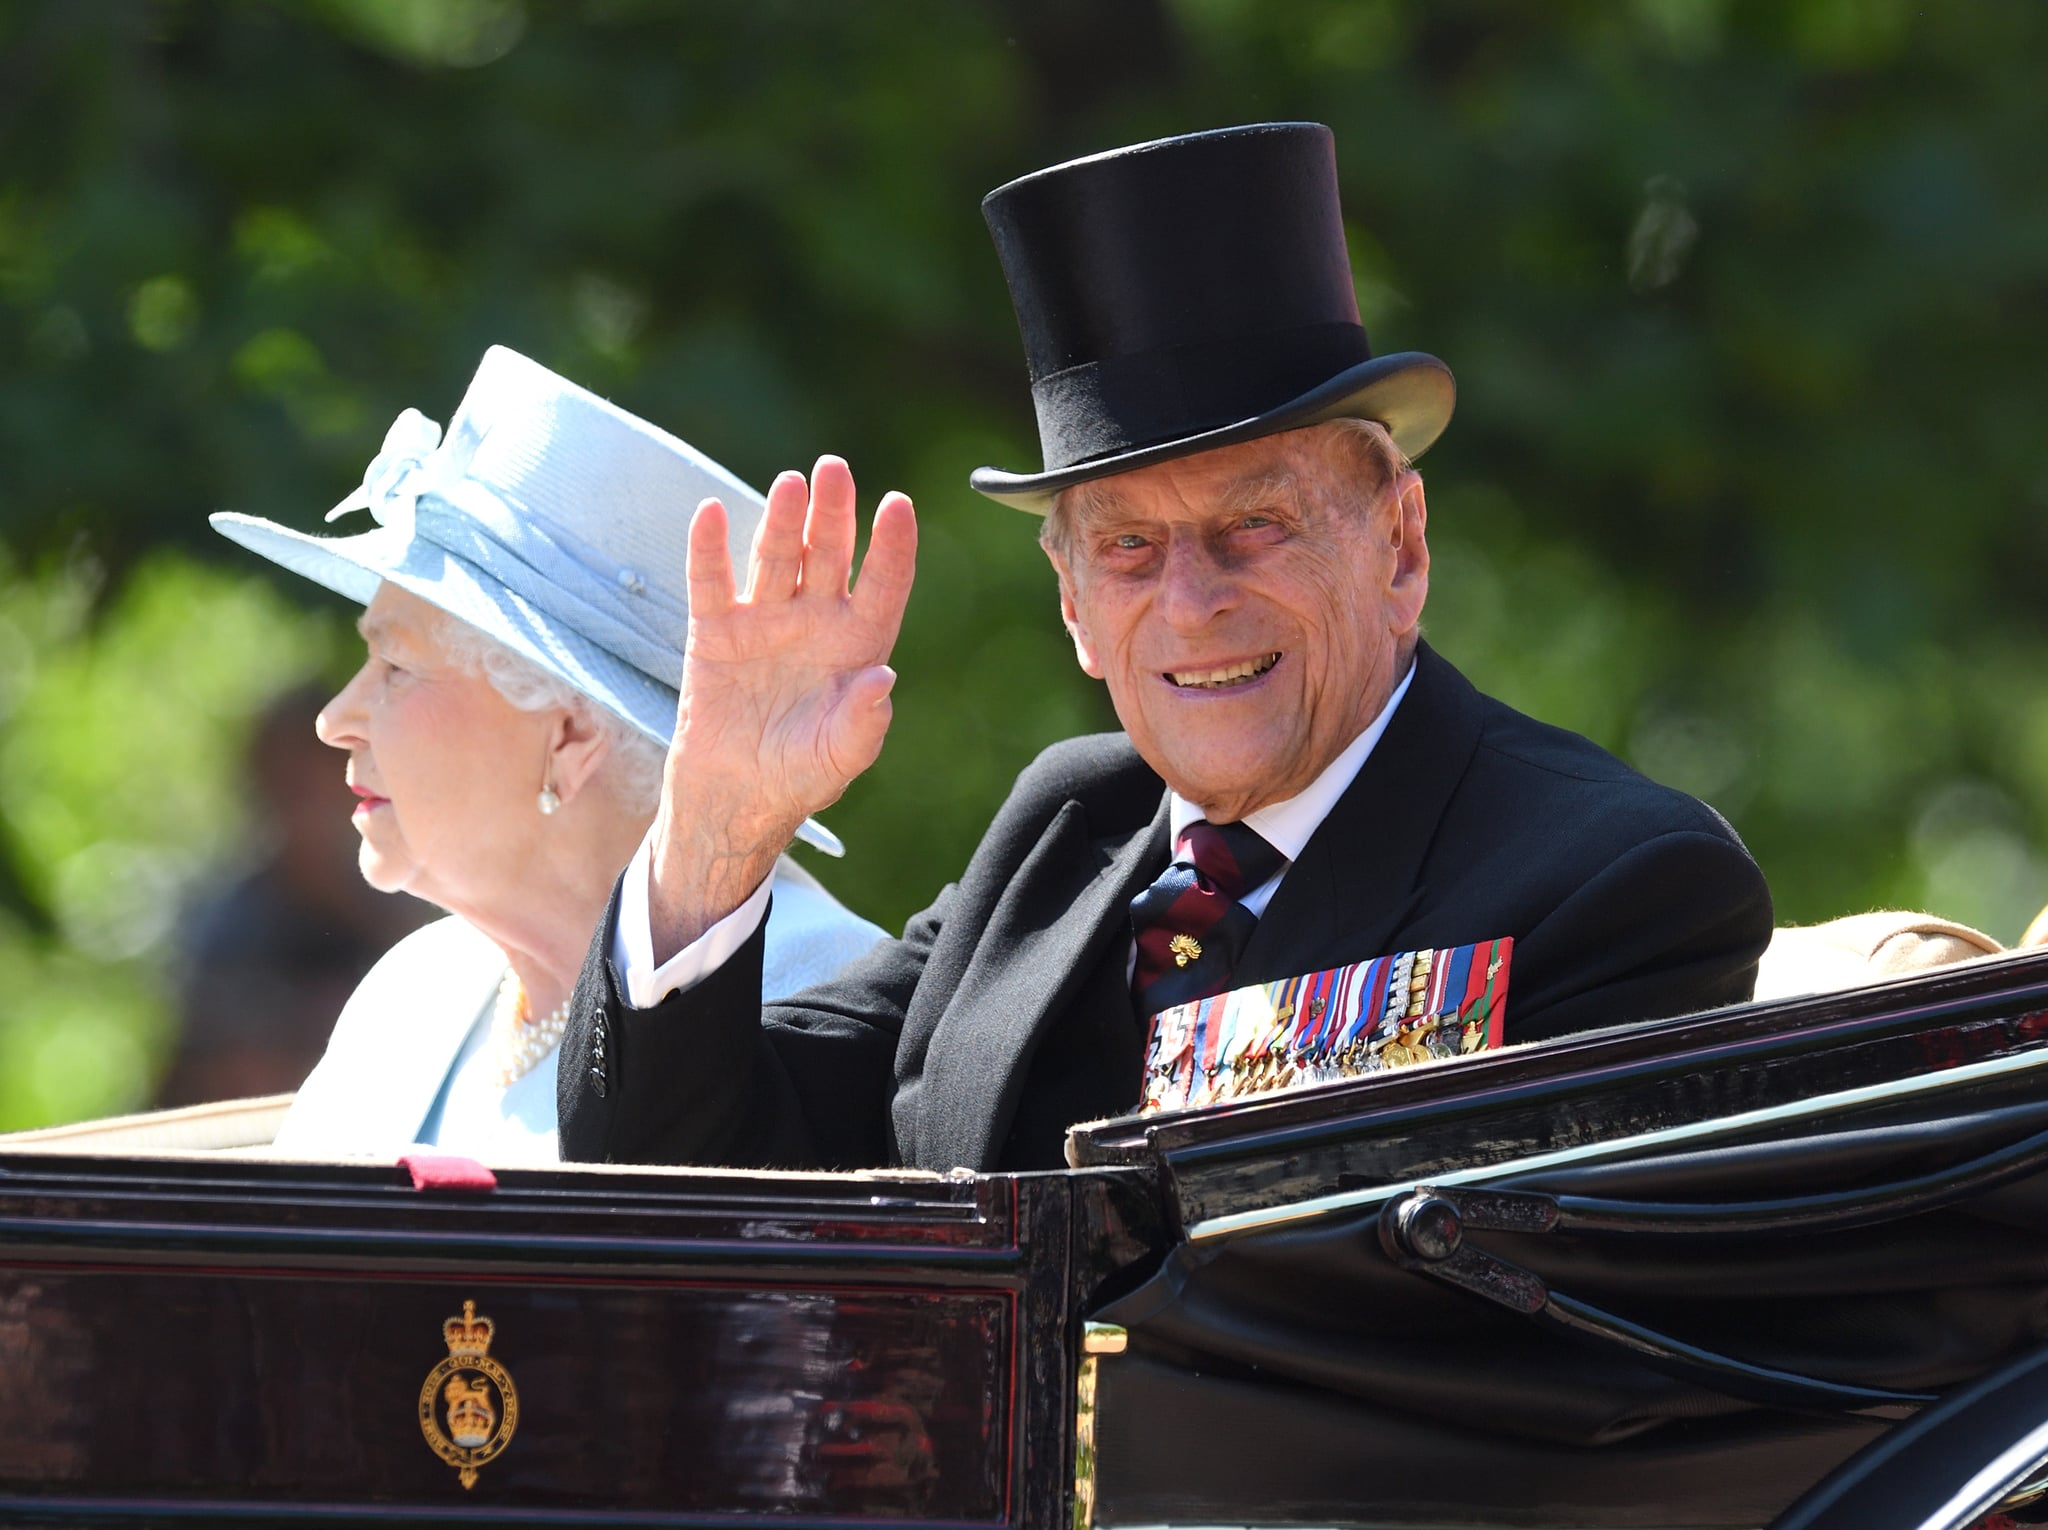 LONDON, ENGLAND - JUNE 17:  Queen Elizabeth II and Prince Philip, Duke of Edinburgh ride by carriage during the annual Trooping The Colour parade at the Mall on June 17, 2017 in London, England.  (Photo by Karwai Tang/WireImage)